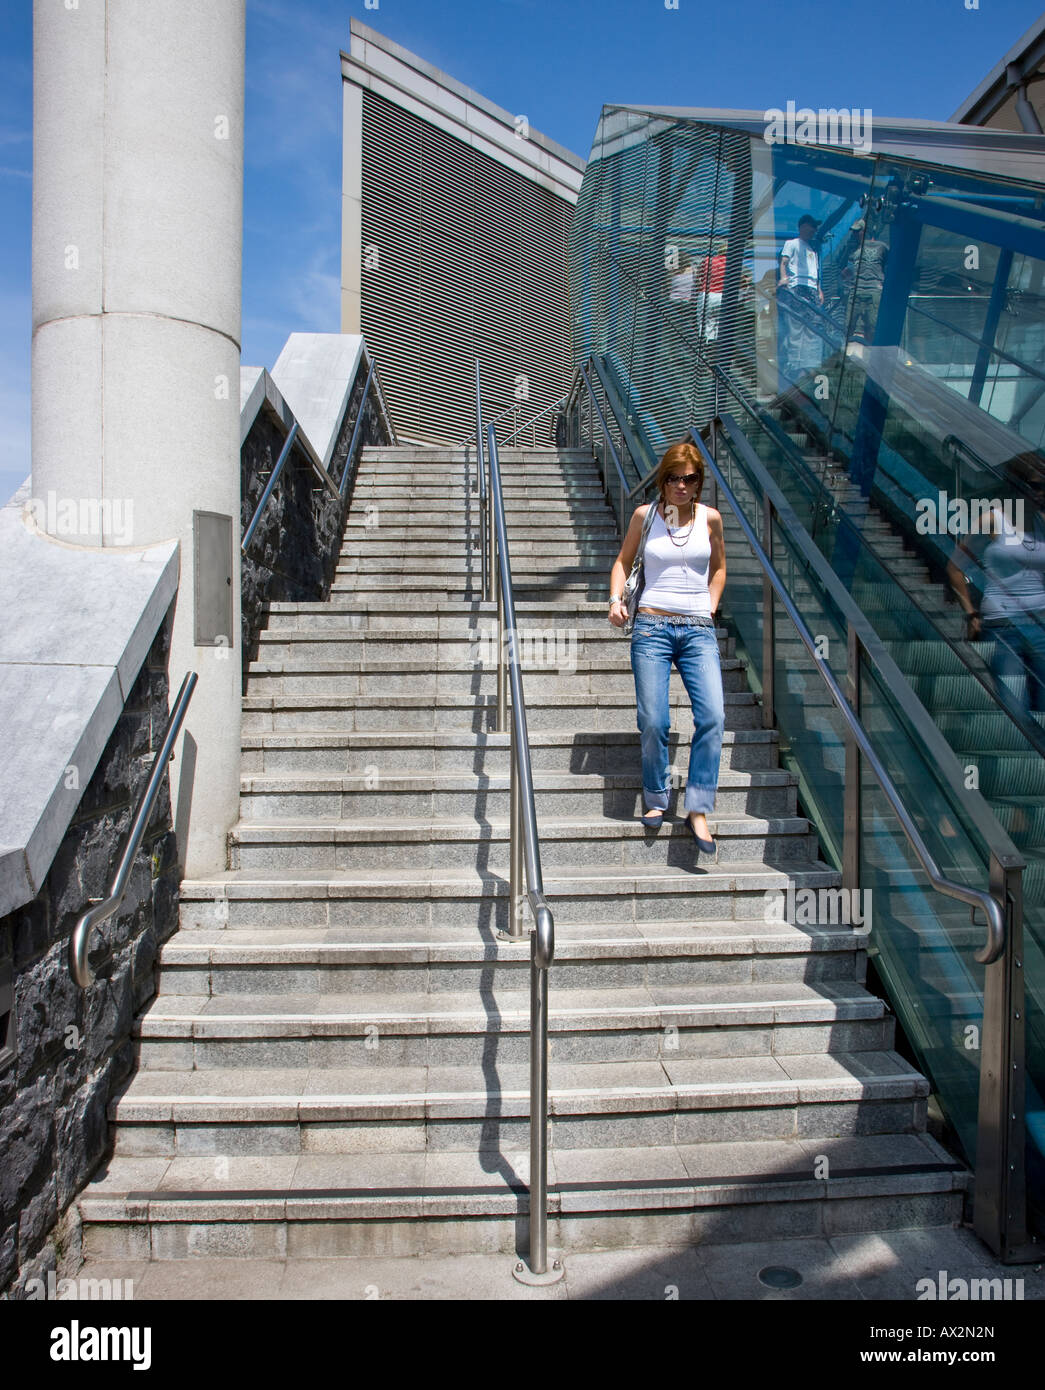 young woman descending steps - Stock Image